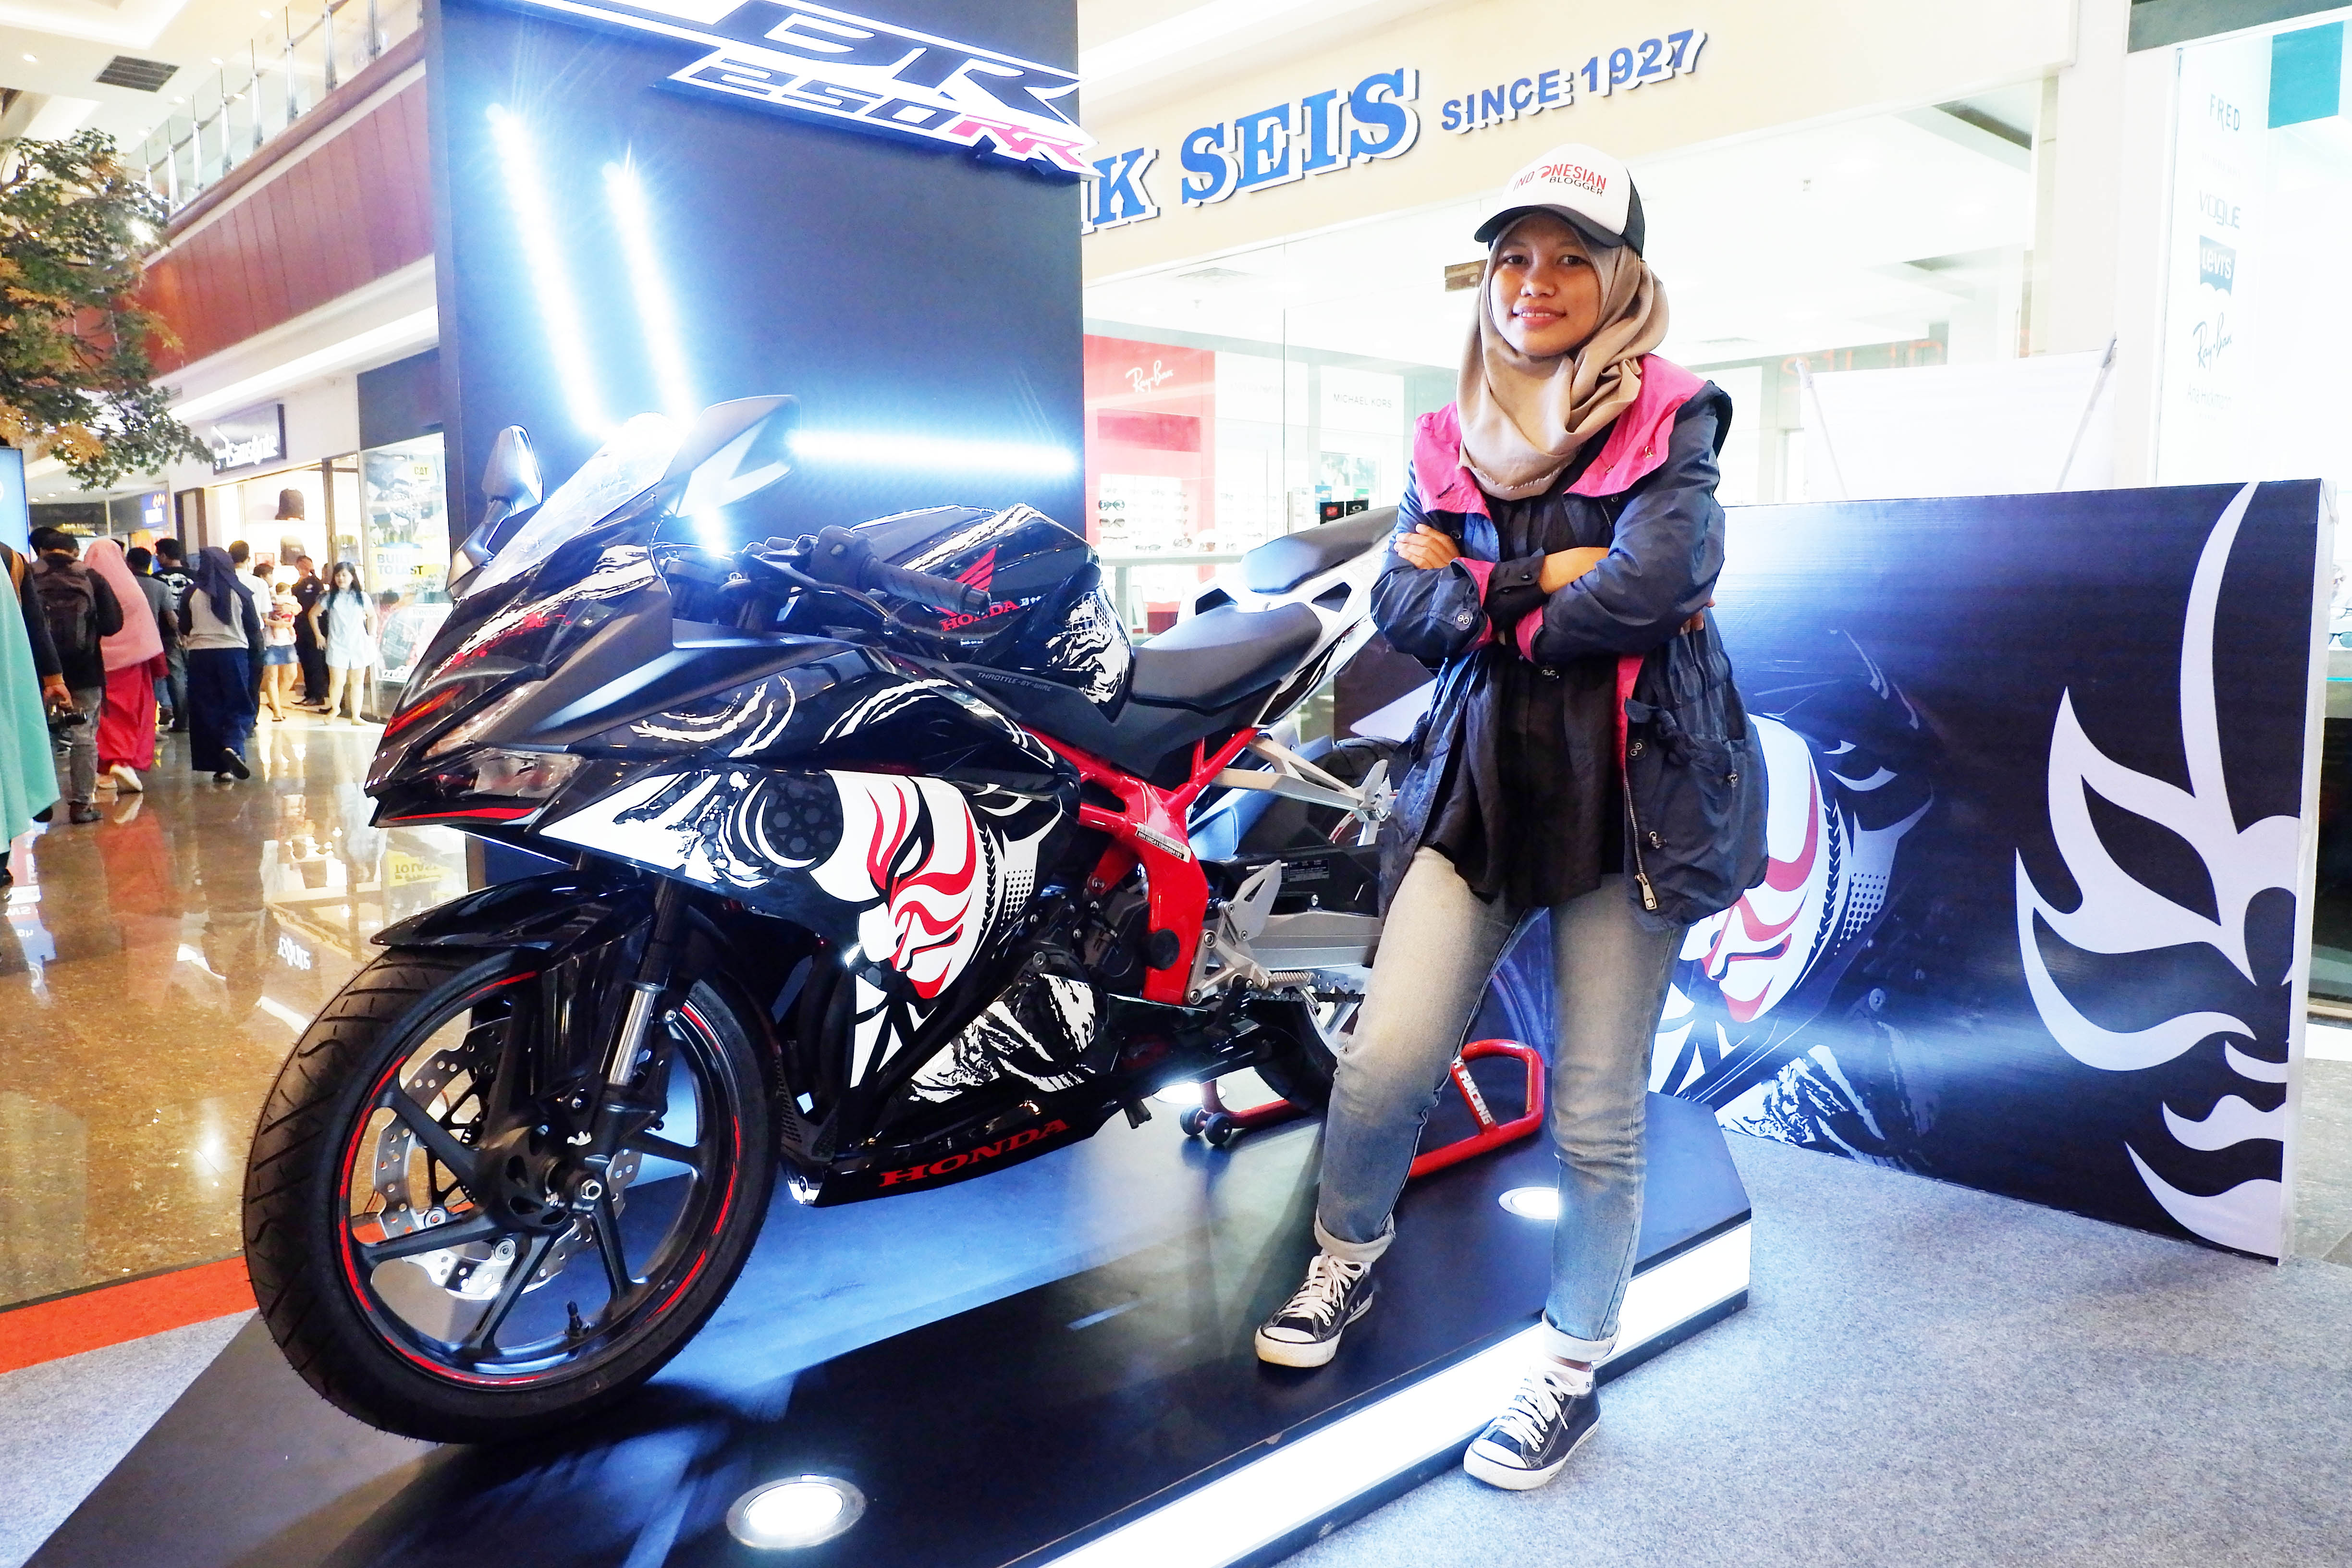 The Art of Kabuki, Kini Terpajang di New Honda CBR250RR Special Edition